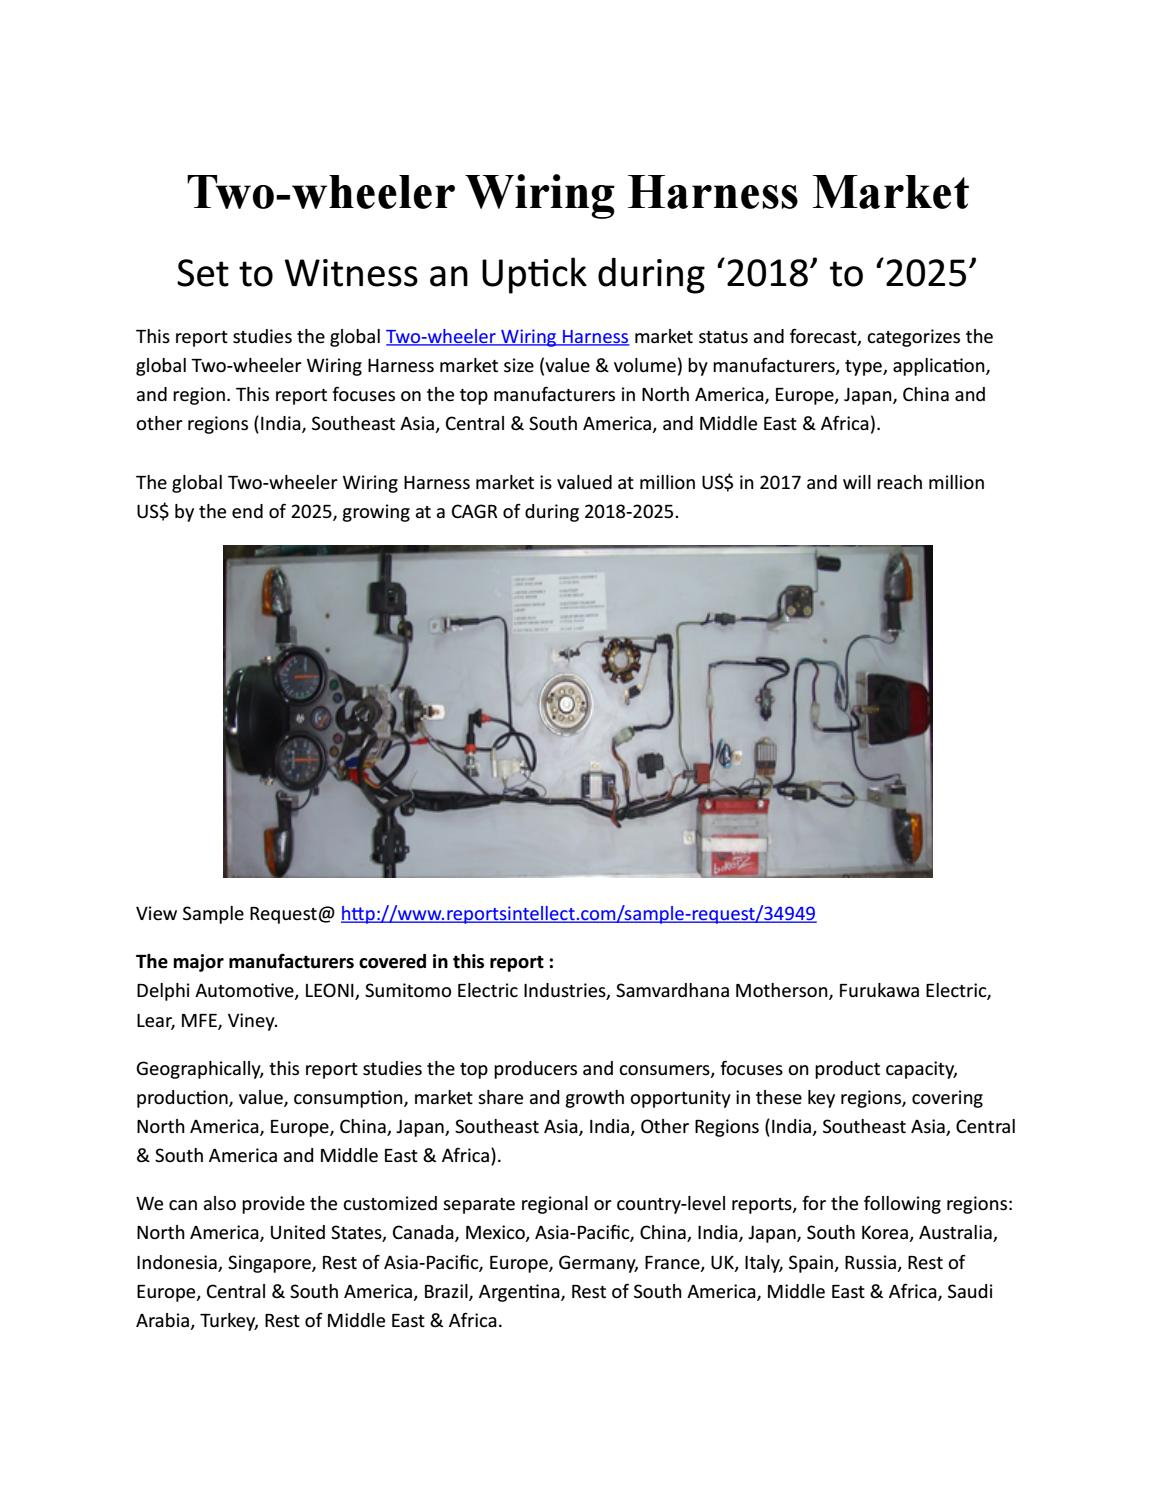 Two Wheeler Wiring Harness Market Estimated To Experience A Hike In Manufacturers Canada Growth By 2025 Shahid Madki Issuu